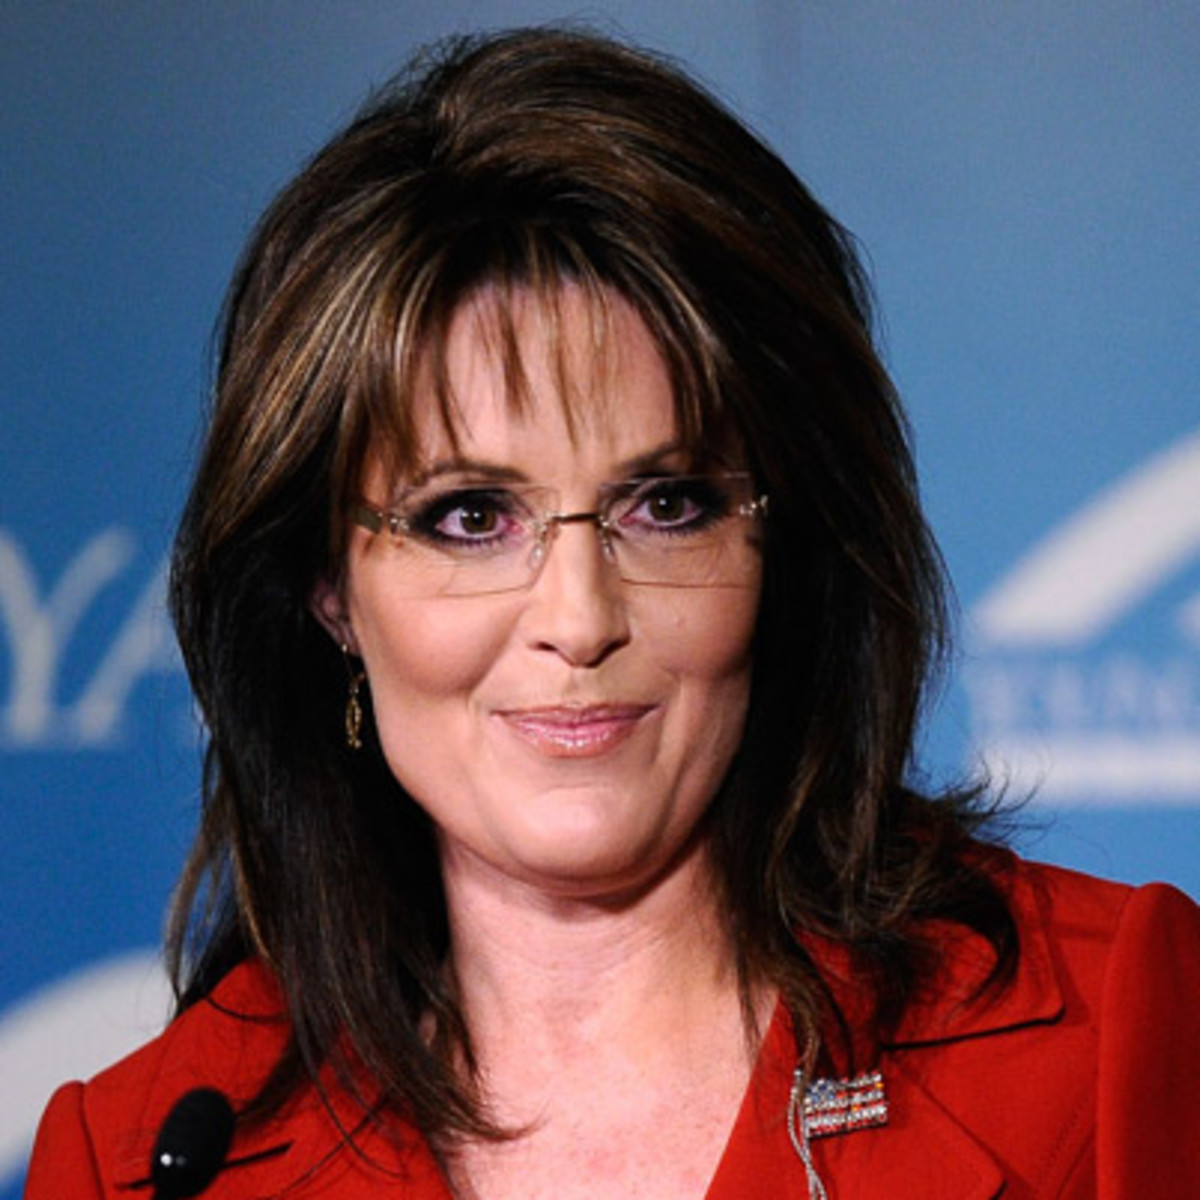 Images Sarah Palin nude (59 photo), Sexy, Cleavage, Twitter, underwear 2015